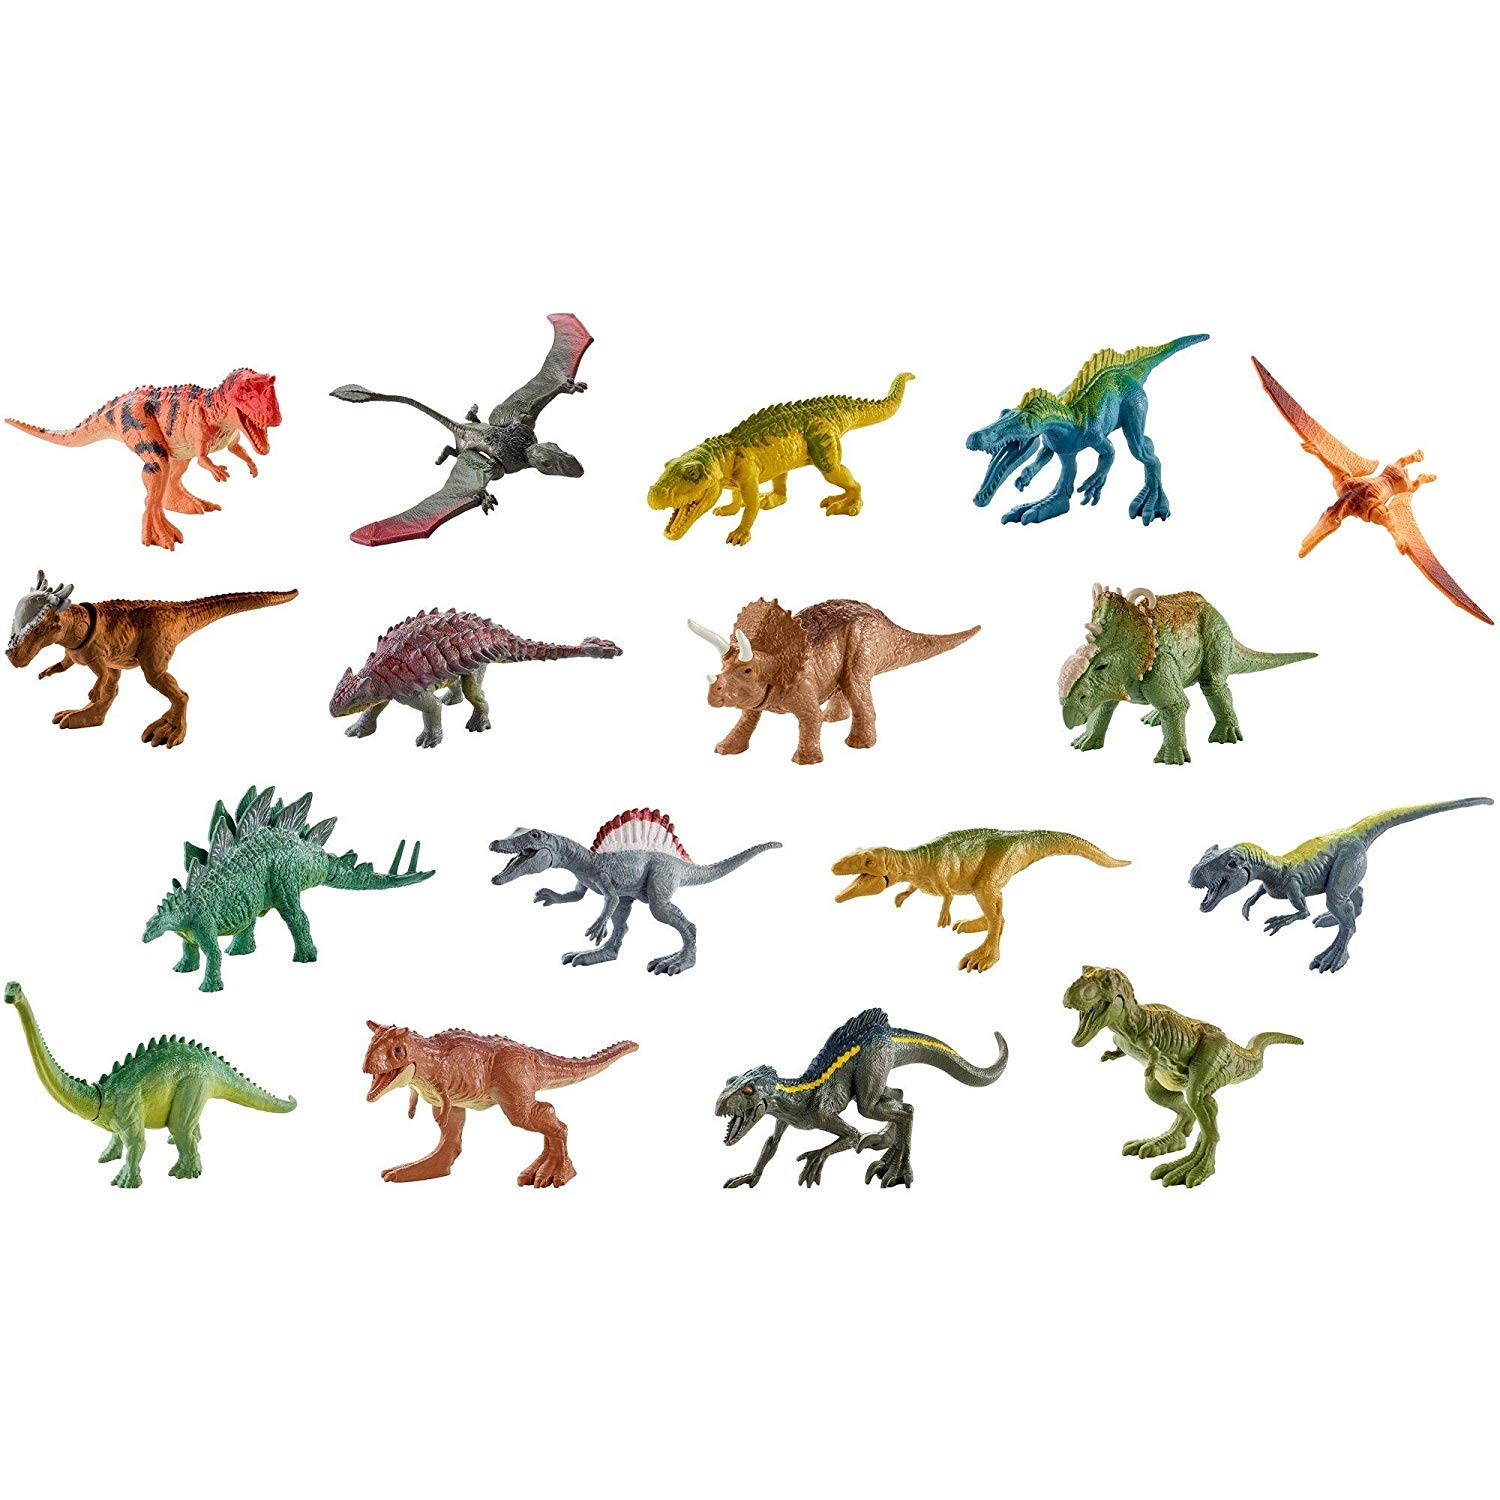 Audacious Triceratops Dinosaur Family Toys Cheapest Price From Our Site Toys & Hobbies